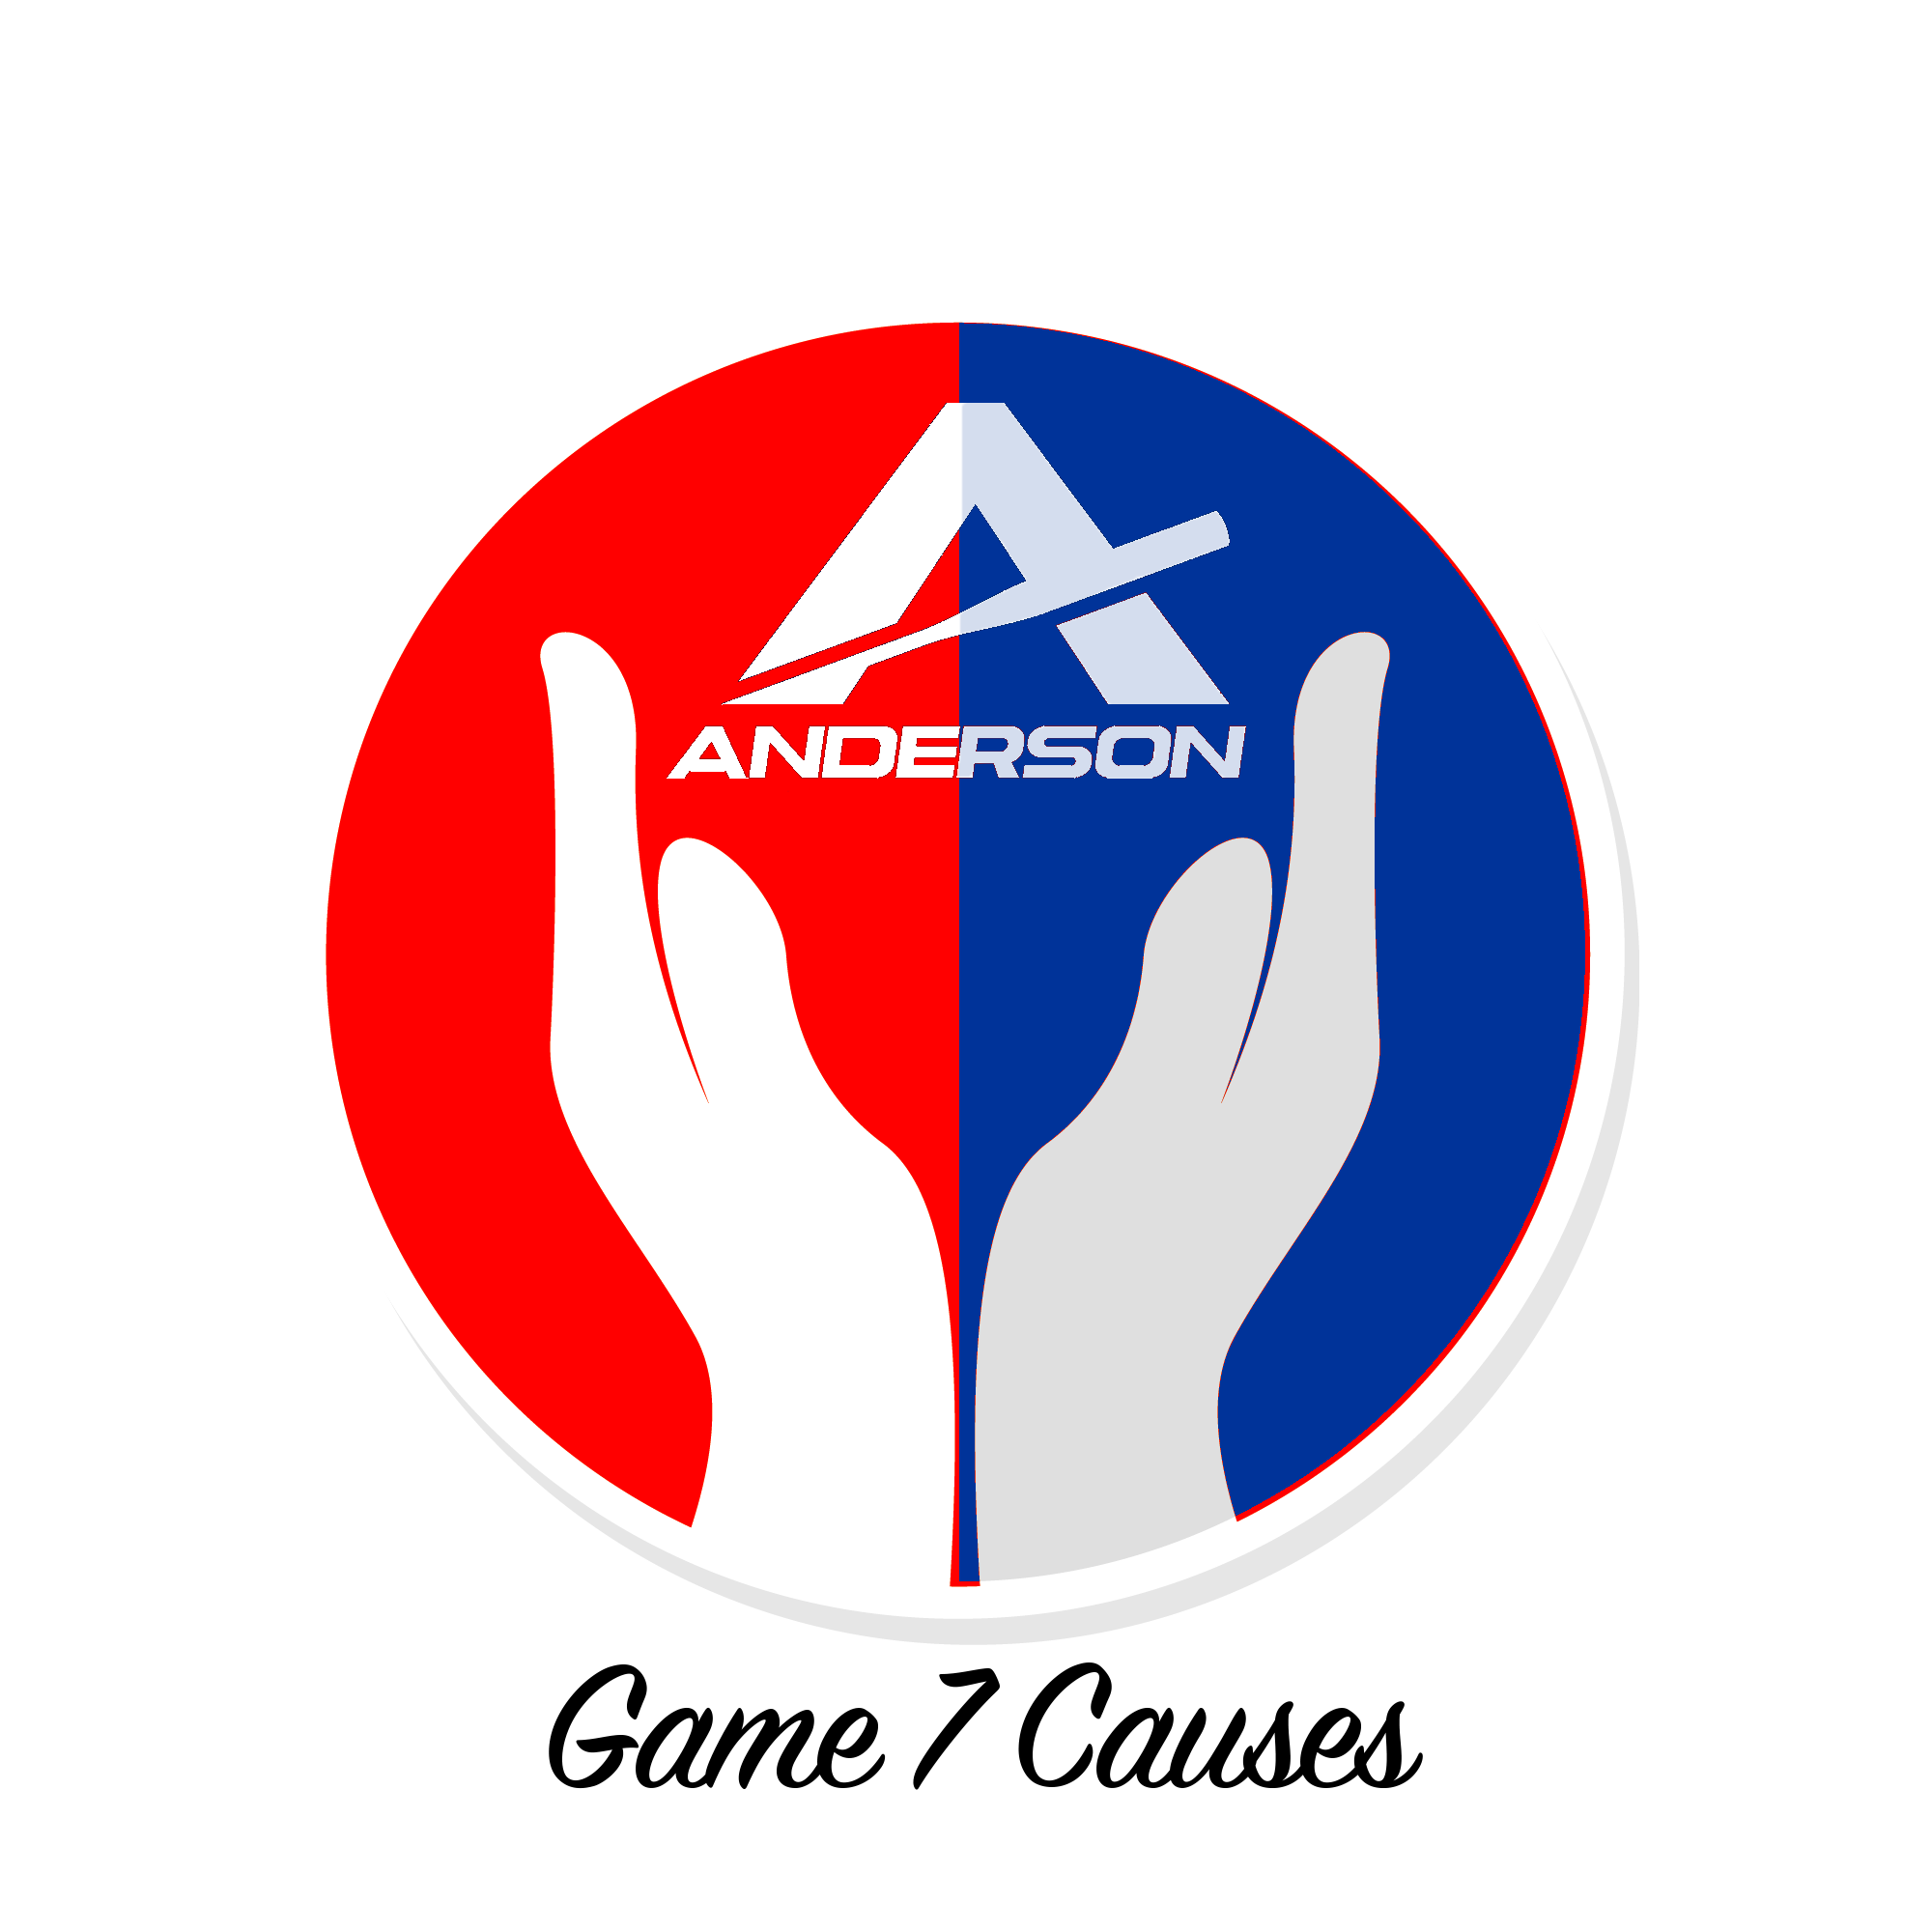 anderson bat game 7 causes charity logo